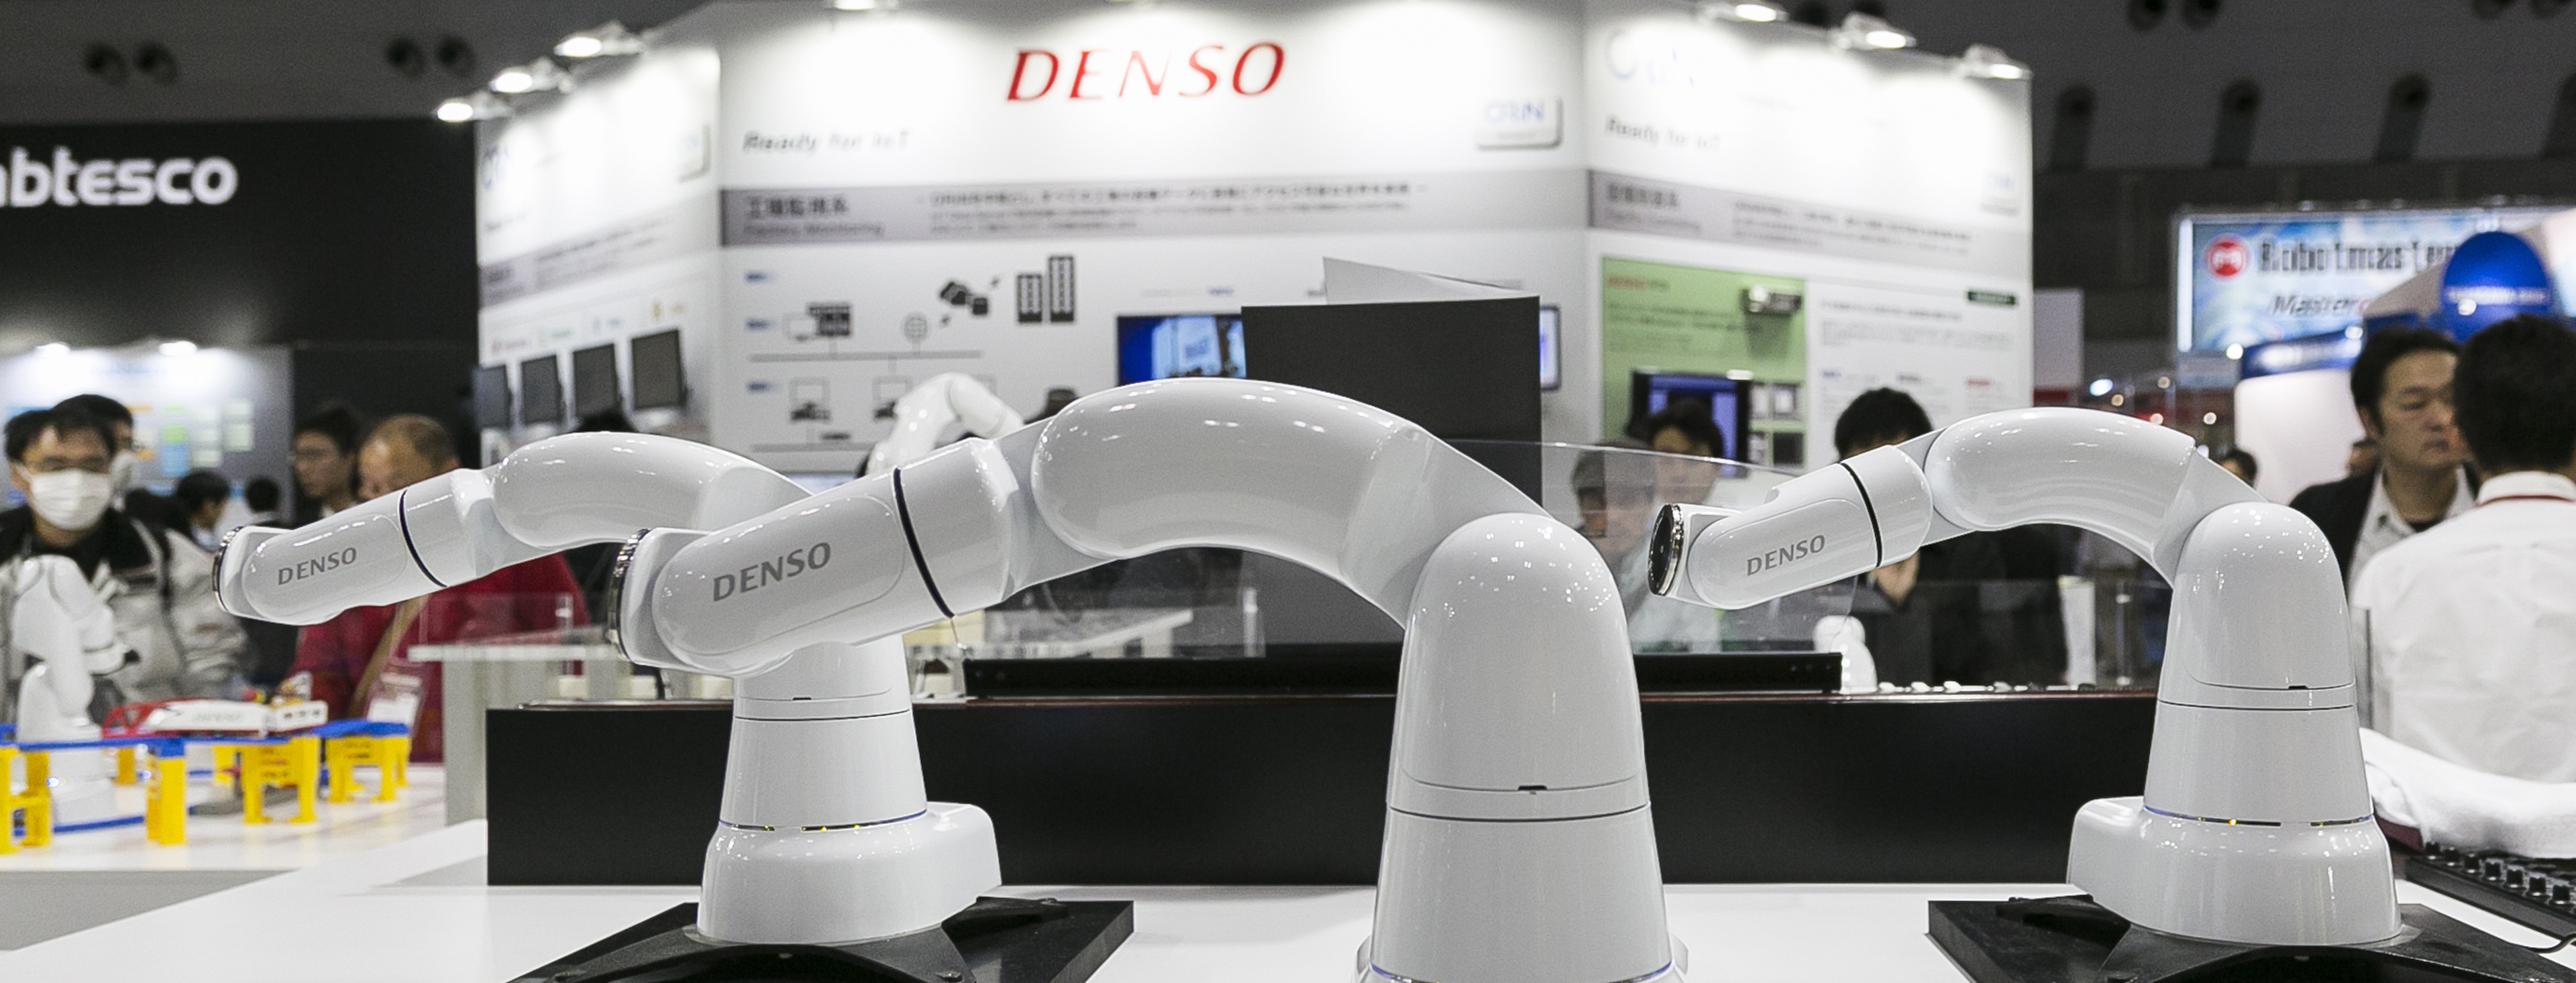 International Robot Exhibition 2015